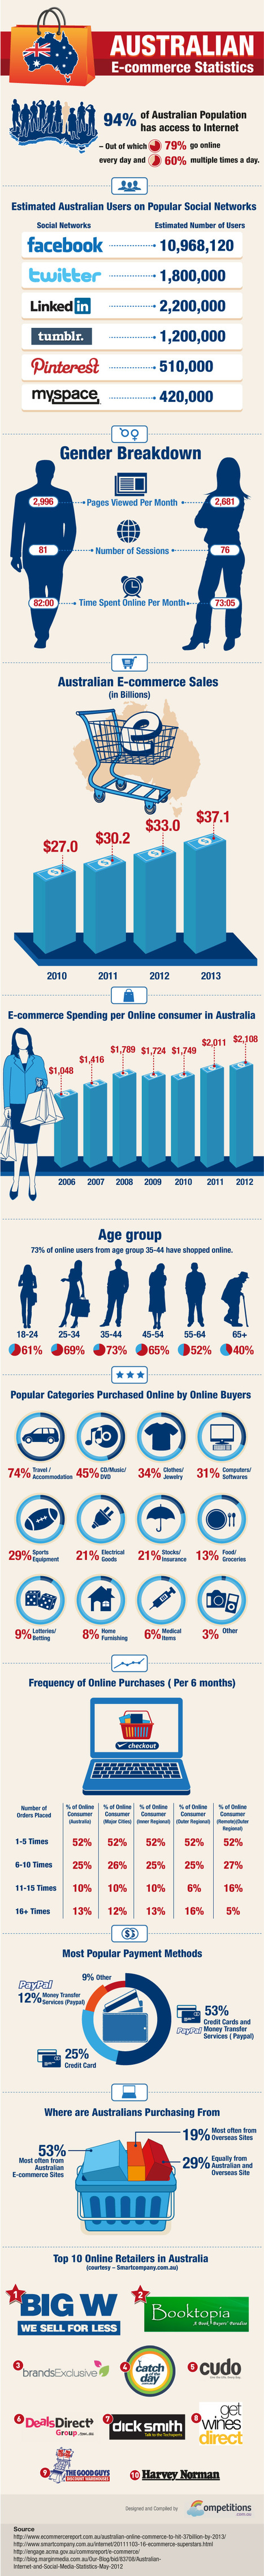 Analysis of Australian e-commerce statistics [Infographic] | Business Updates | Scoop.it